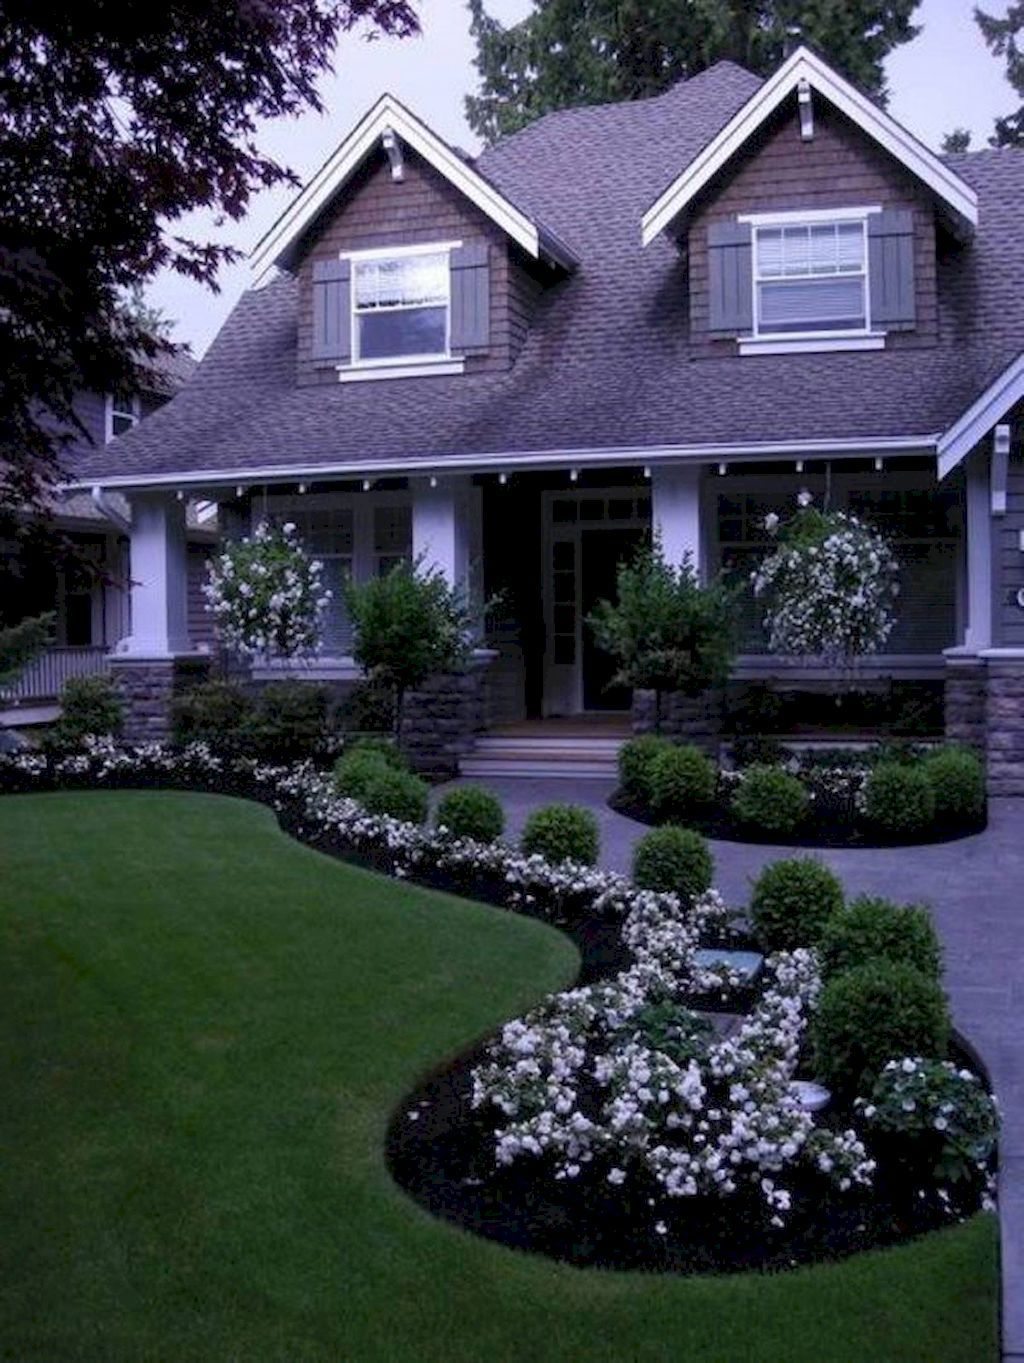 40 beautiful front yard landscaping ideas yard for Front lawn garden design